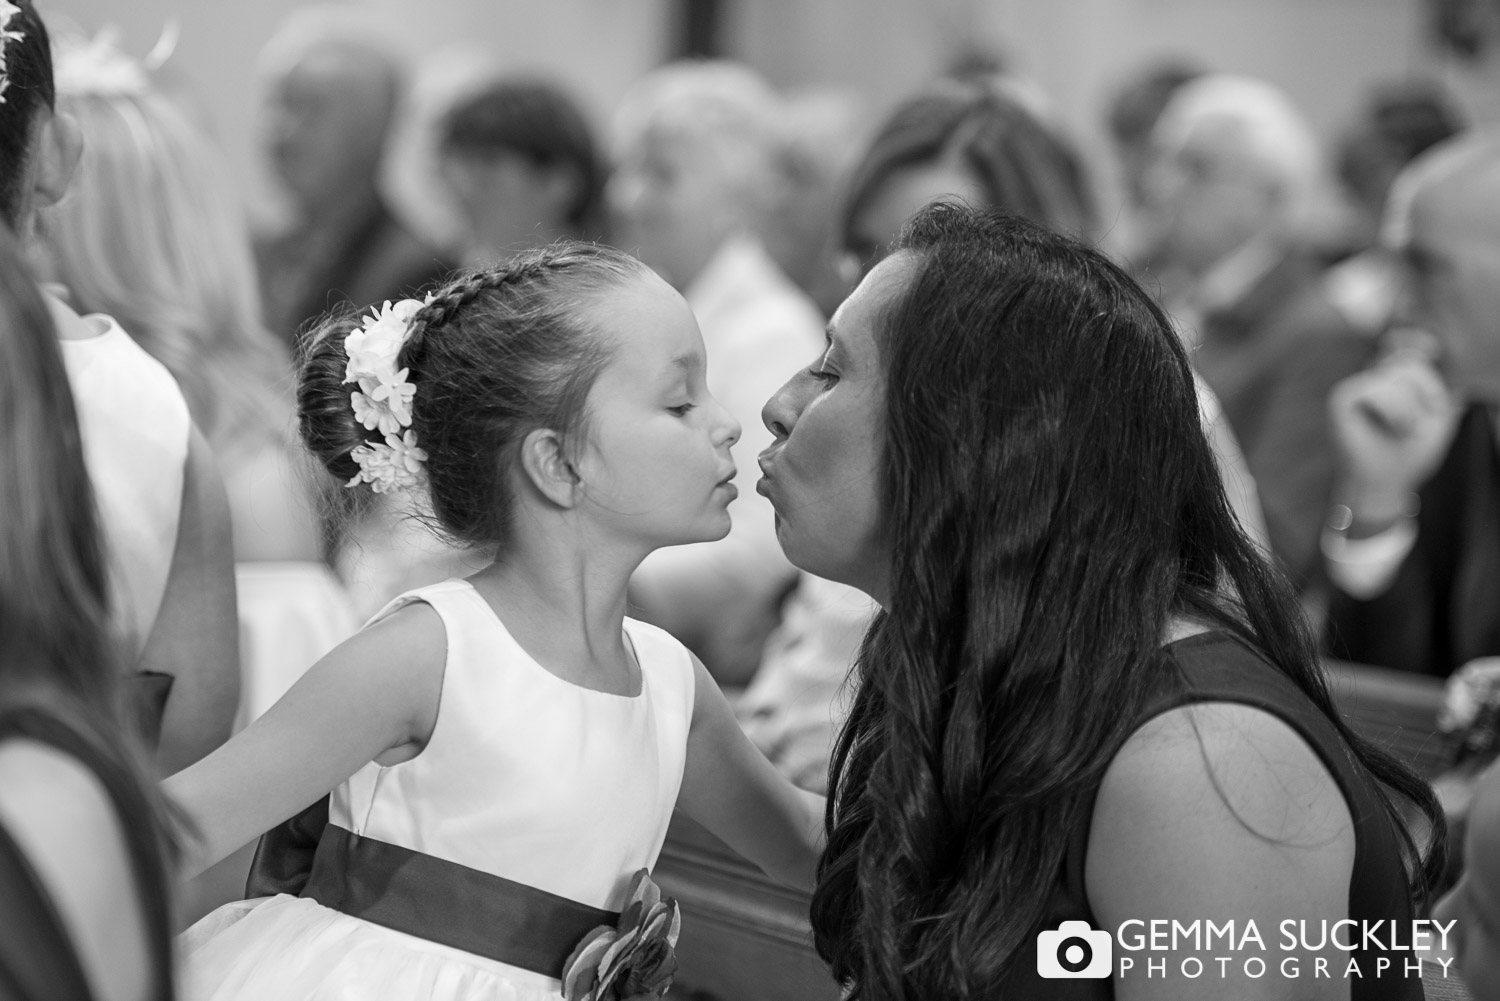 wedding-photography-harrogate©gemmasuckleyphotography.JPG